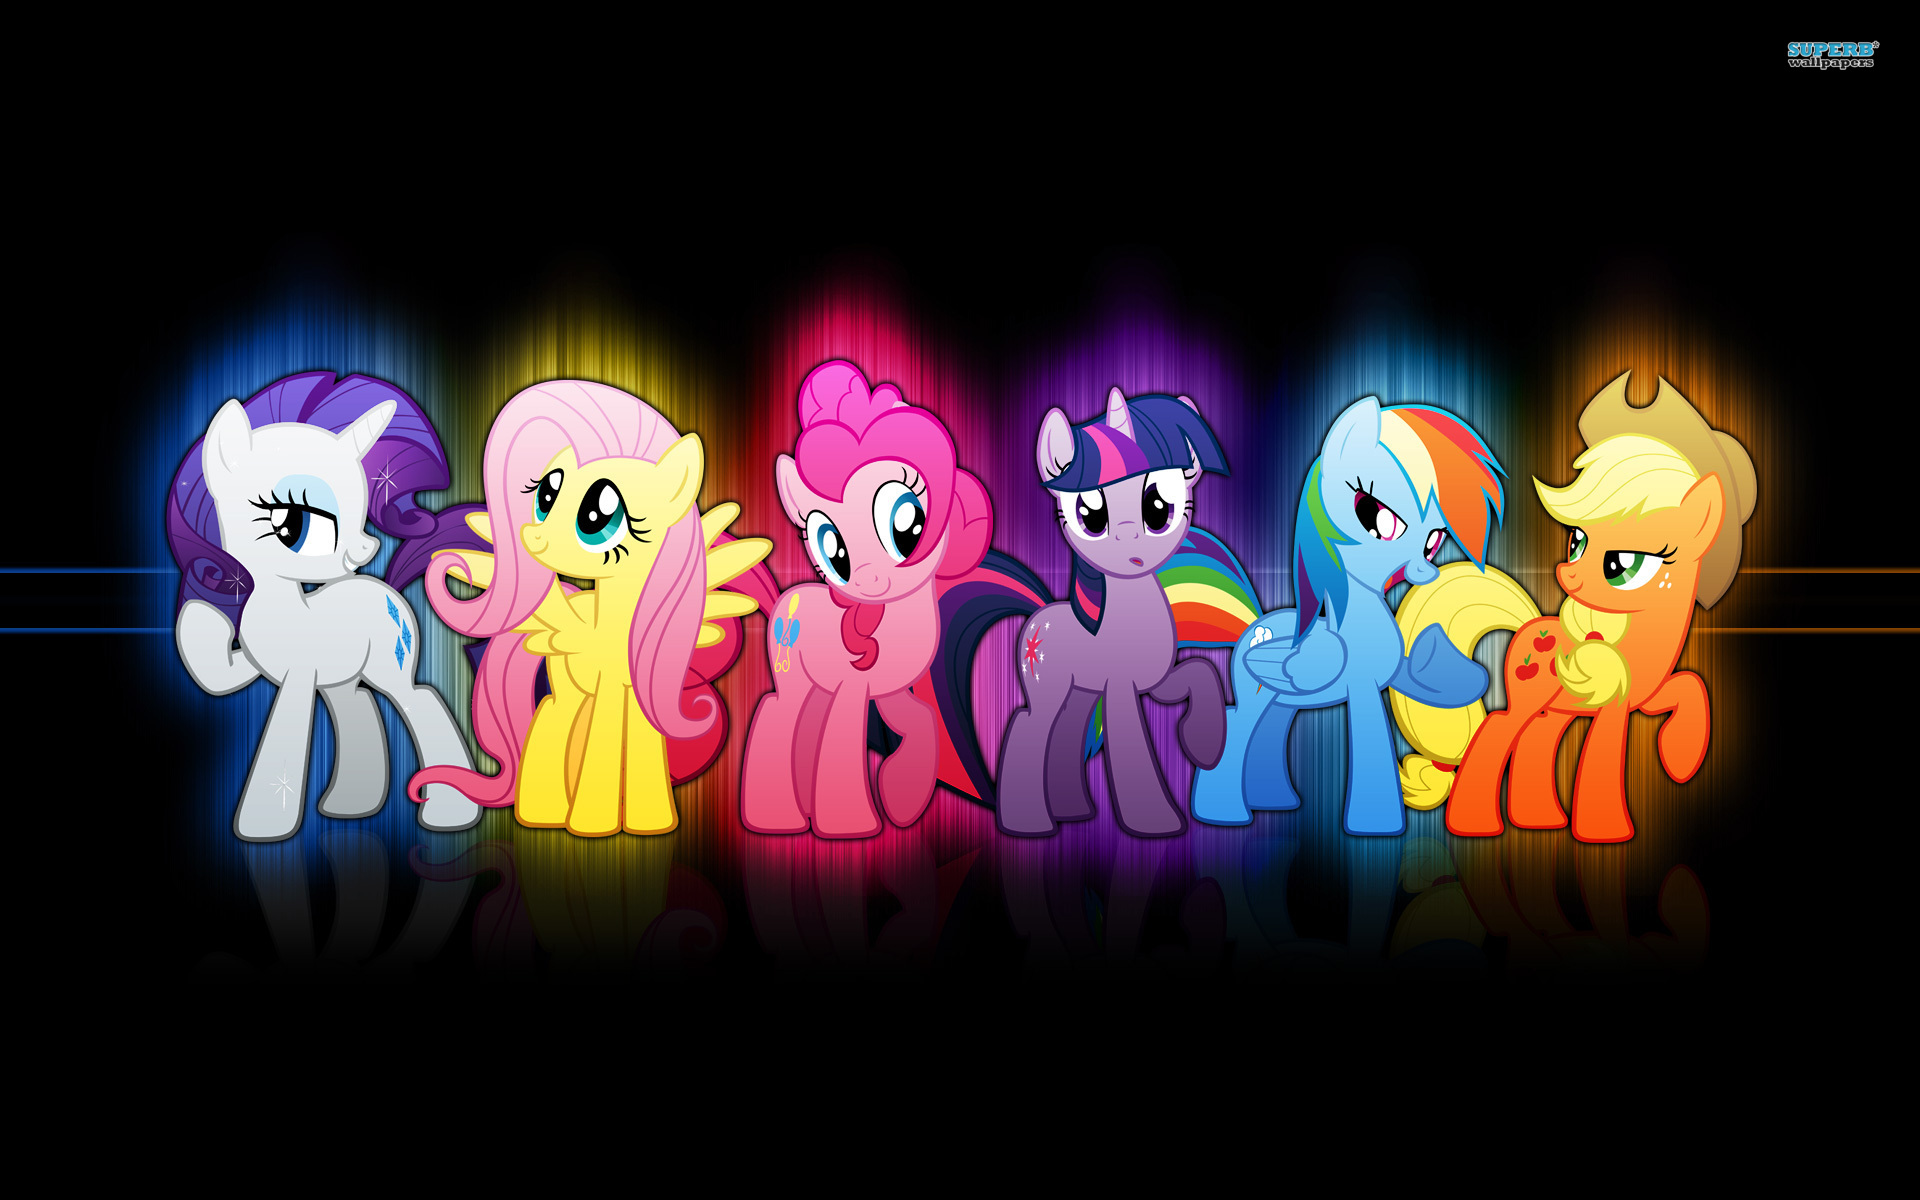 wallpapers wallpaper pony little shows 1920x1200